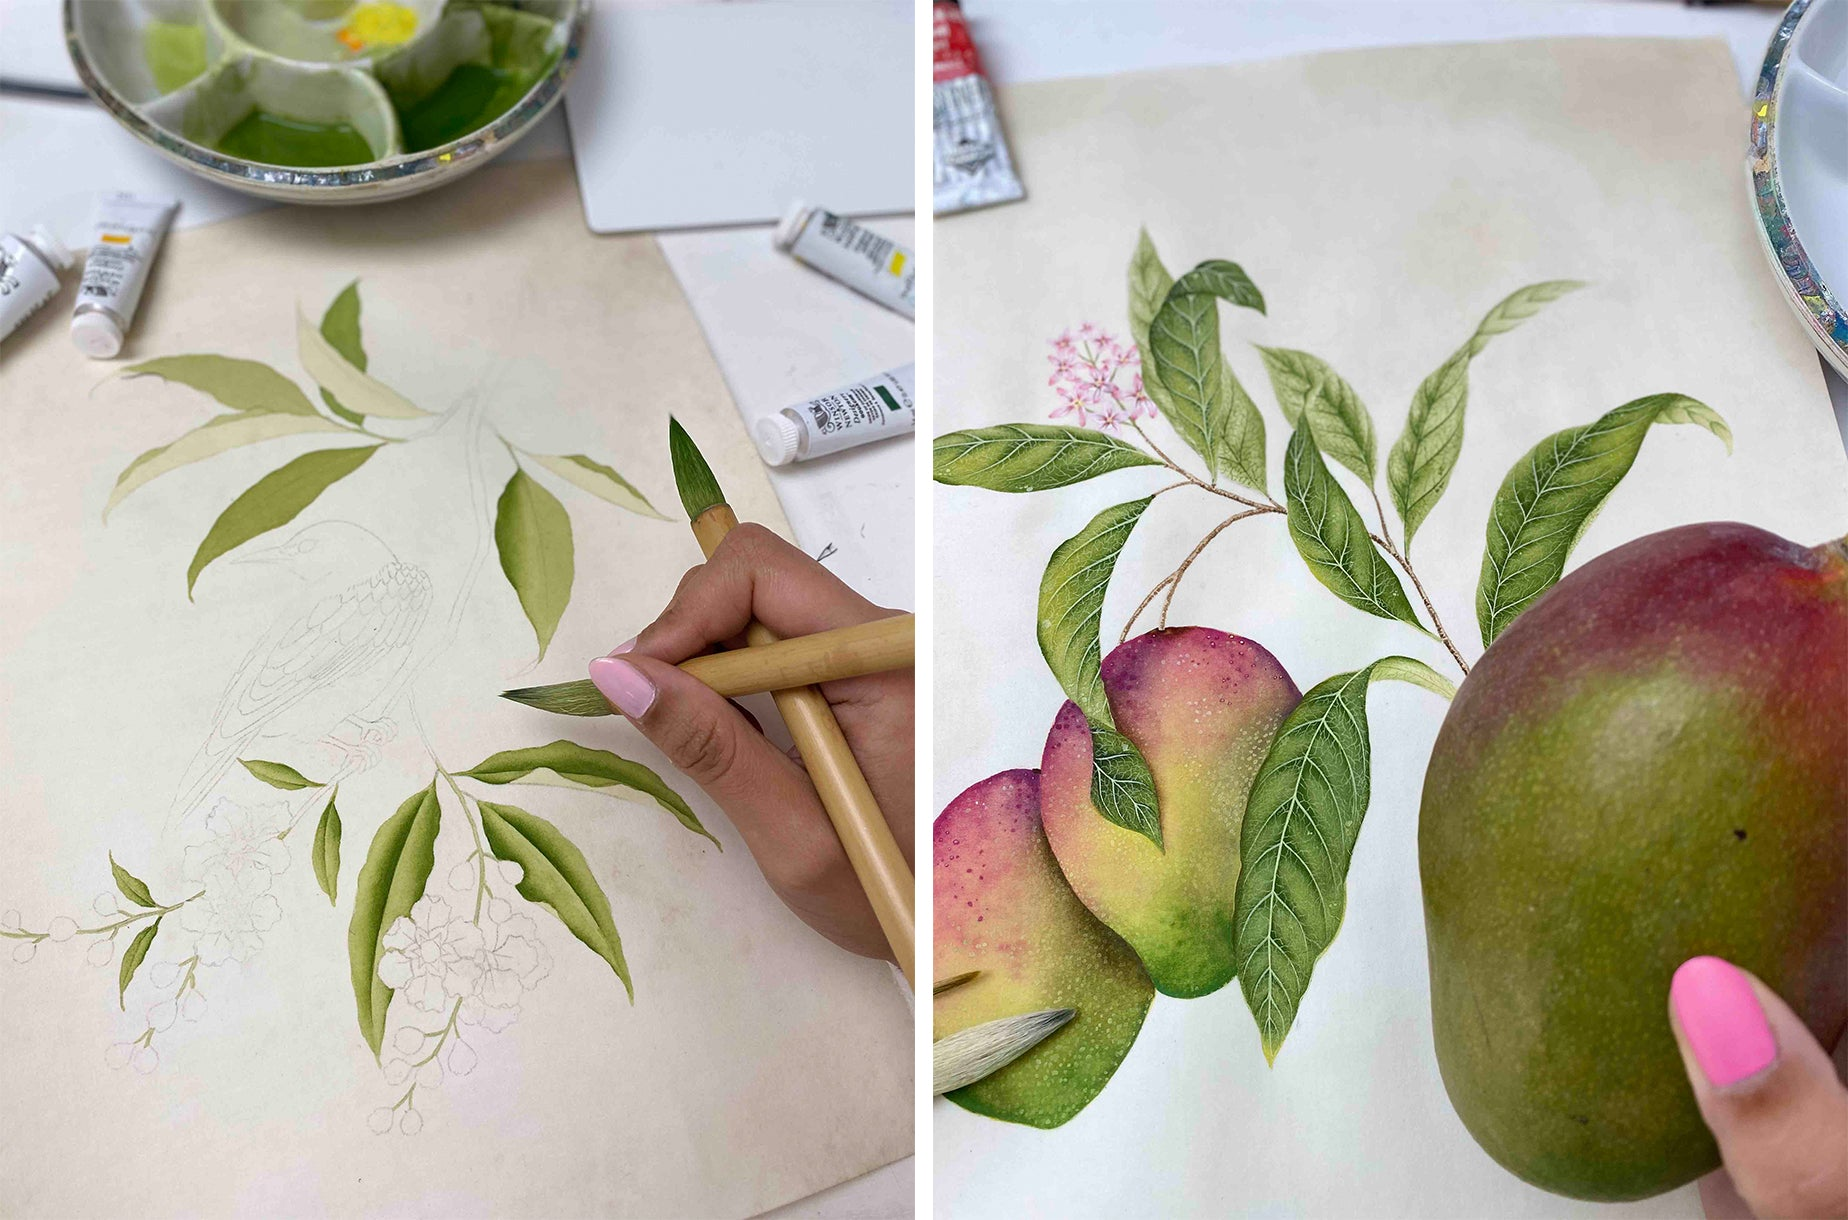 Diane Hill painting the botanical collection work in progress mangos